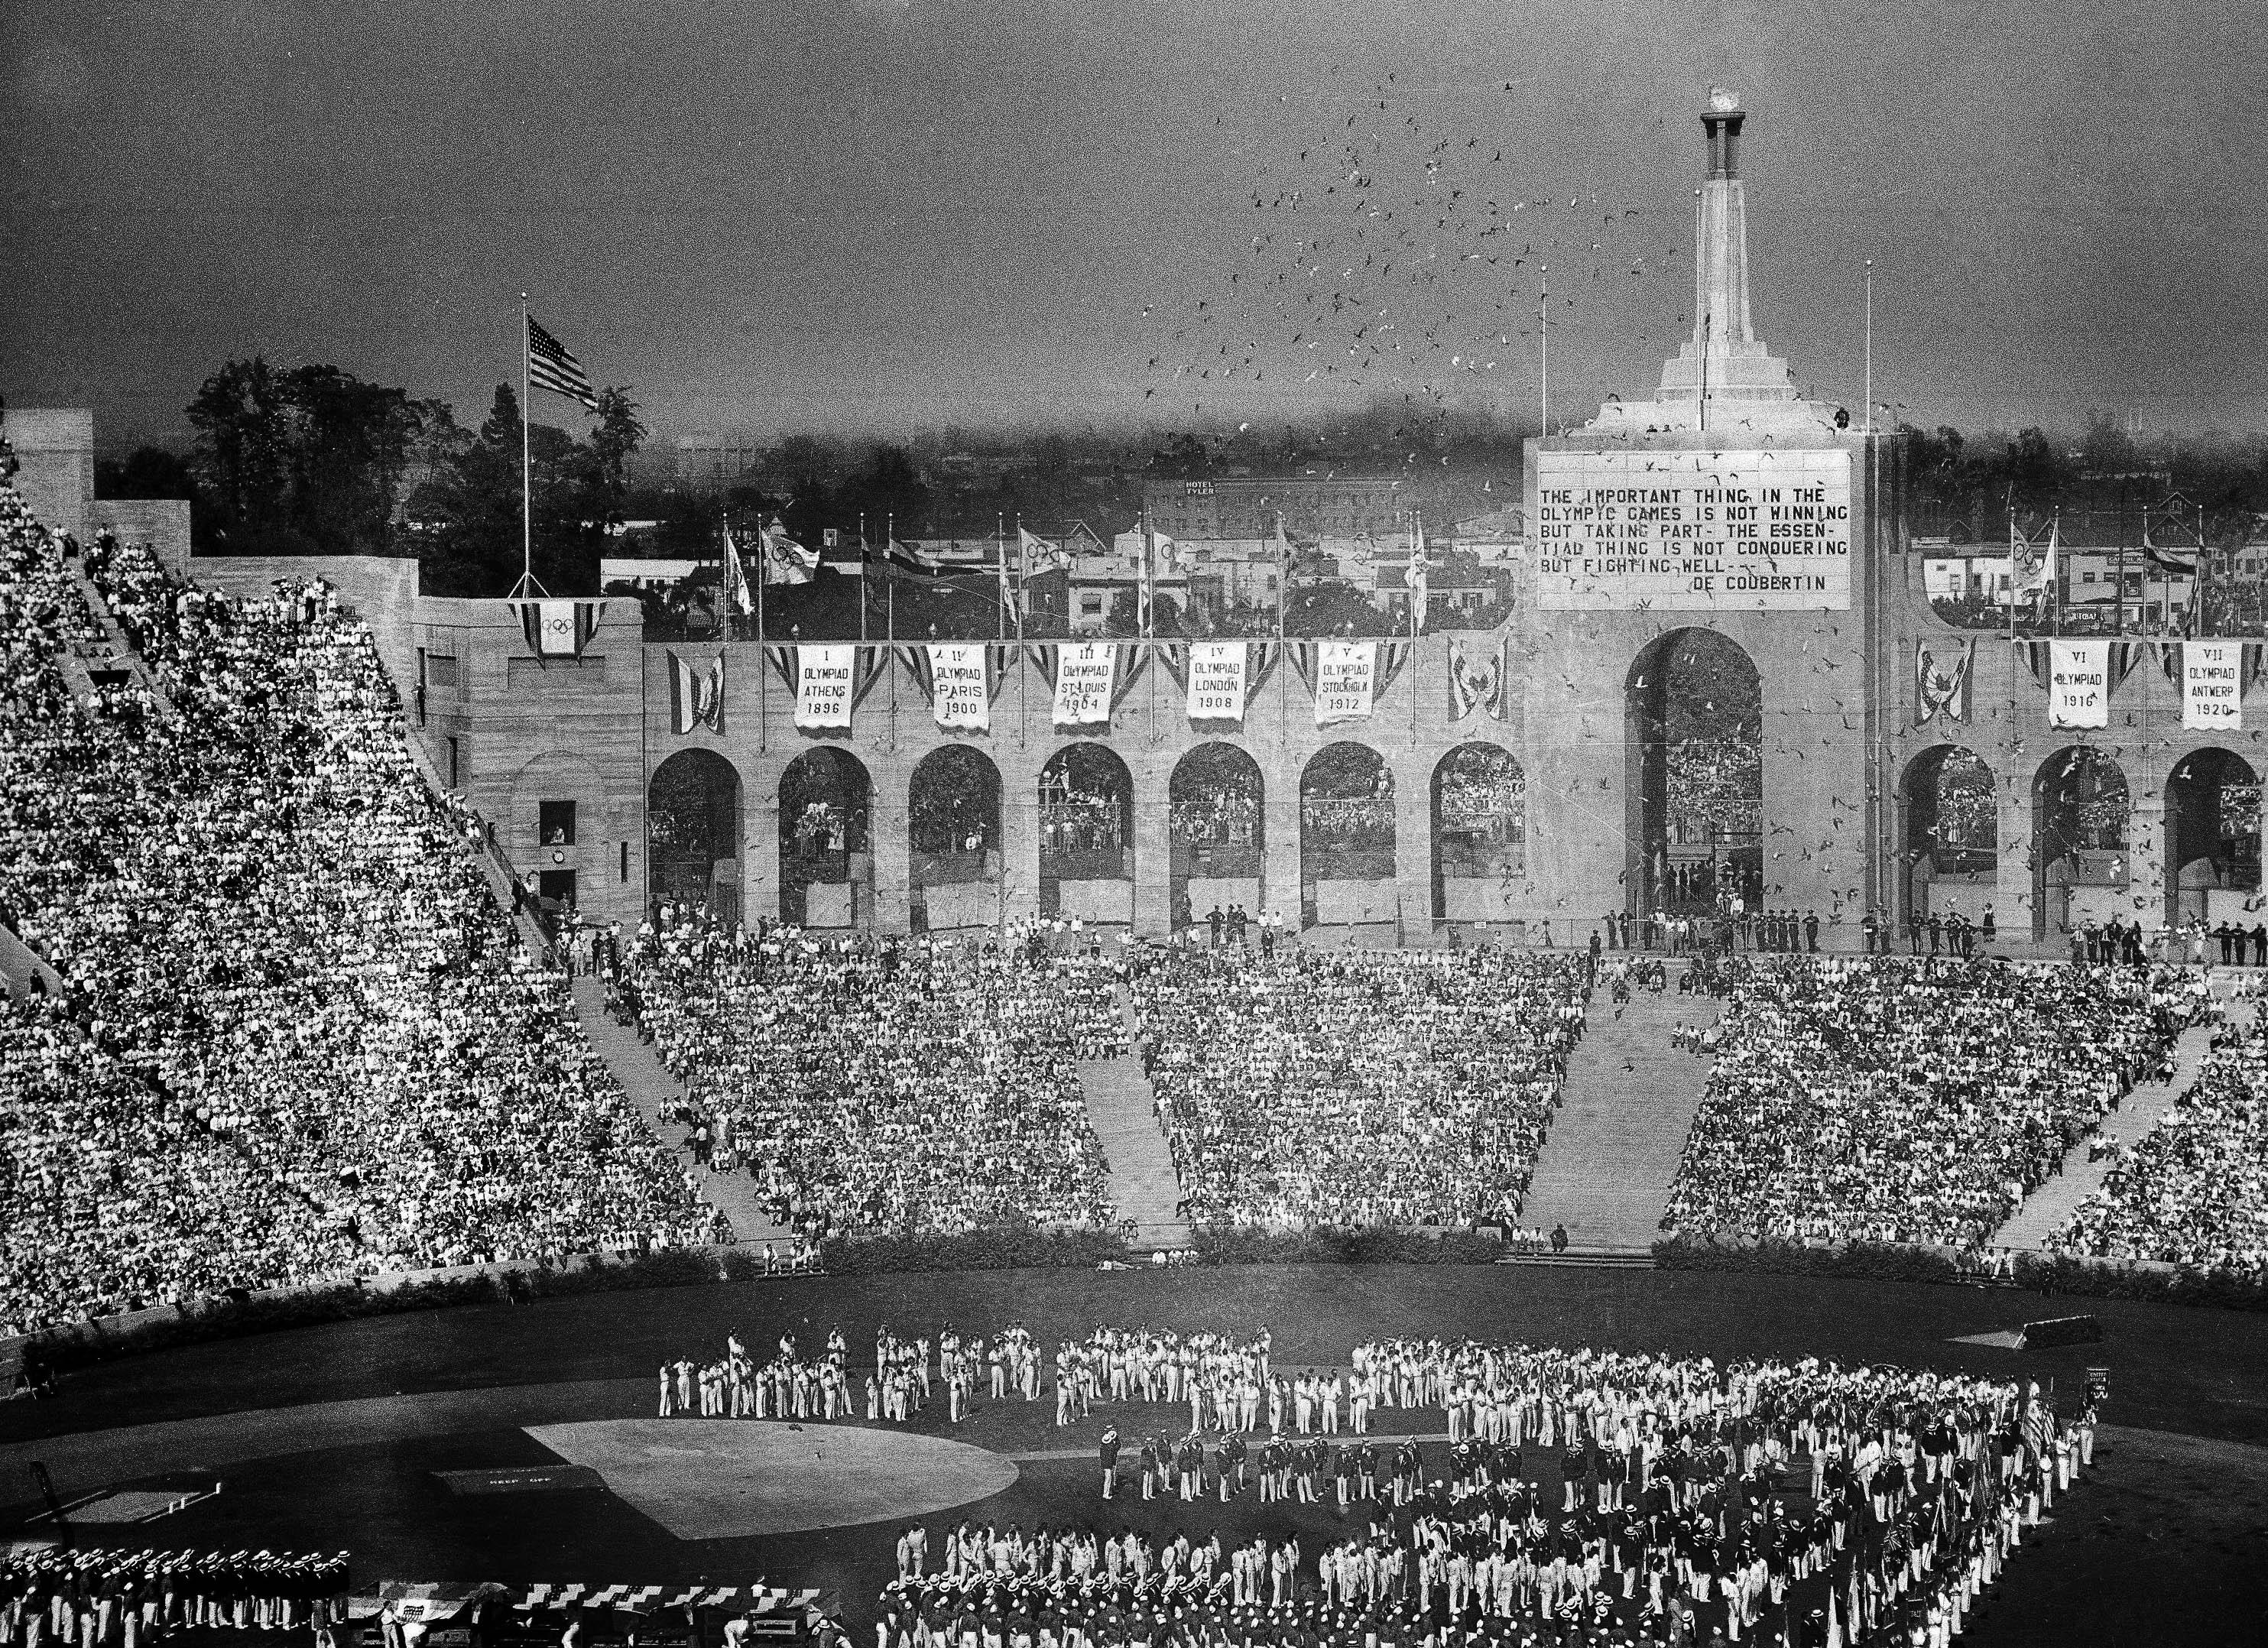 FILE -  In this July 30, 1932, file photo, doves are released during opening ceremonies of the Tenth Olympiad at the Coliseum in Los Angeles. (AP Photo)